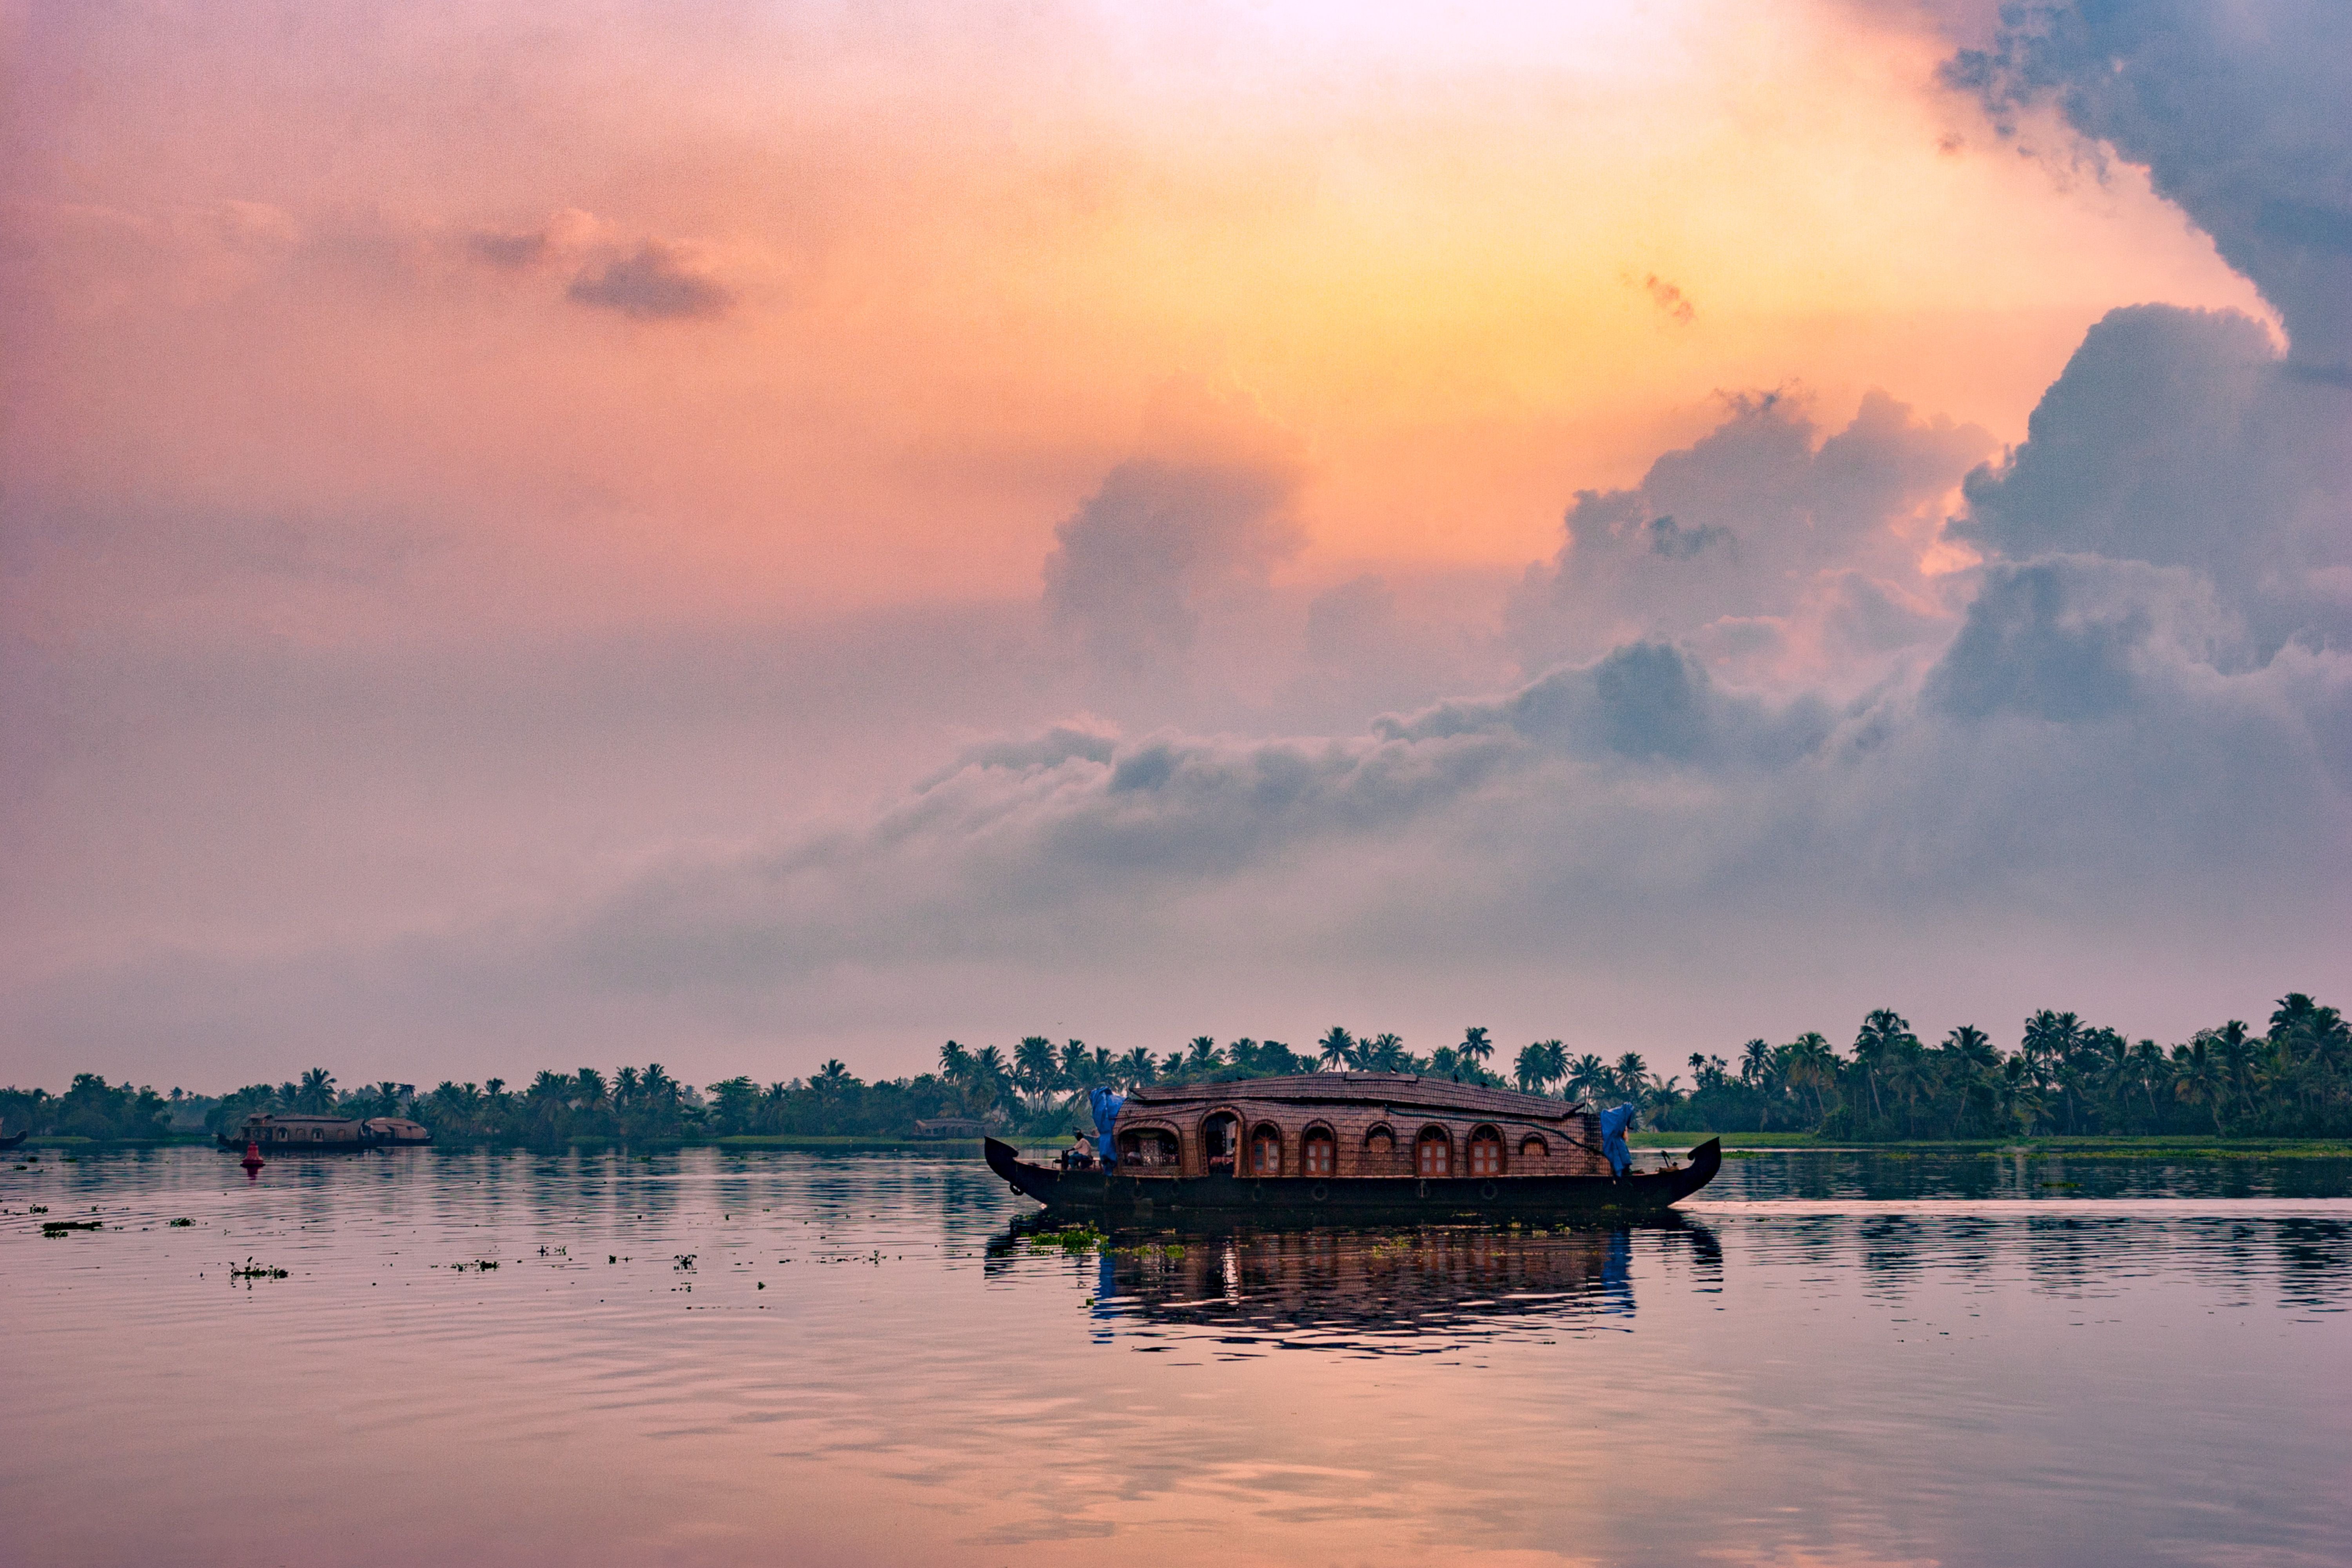 Paseo en barco por los backwaters en Alleppey - India Gran Viaje Sur de la India